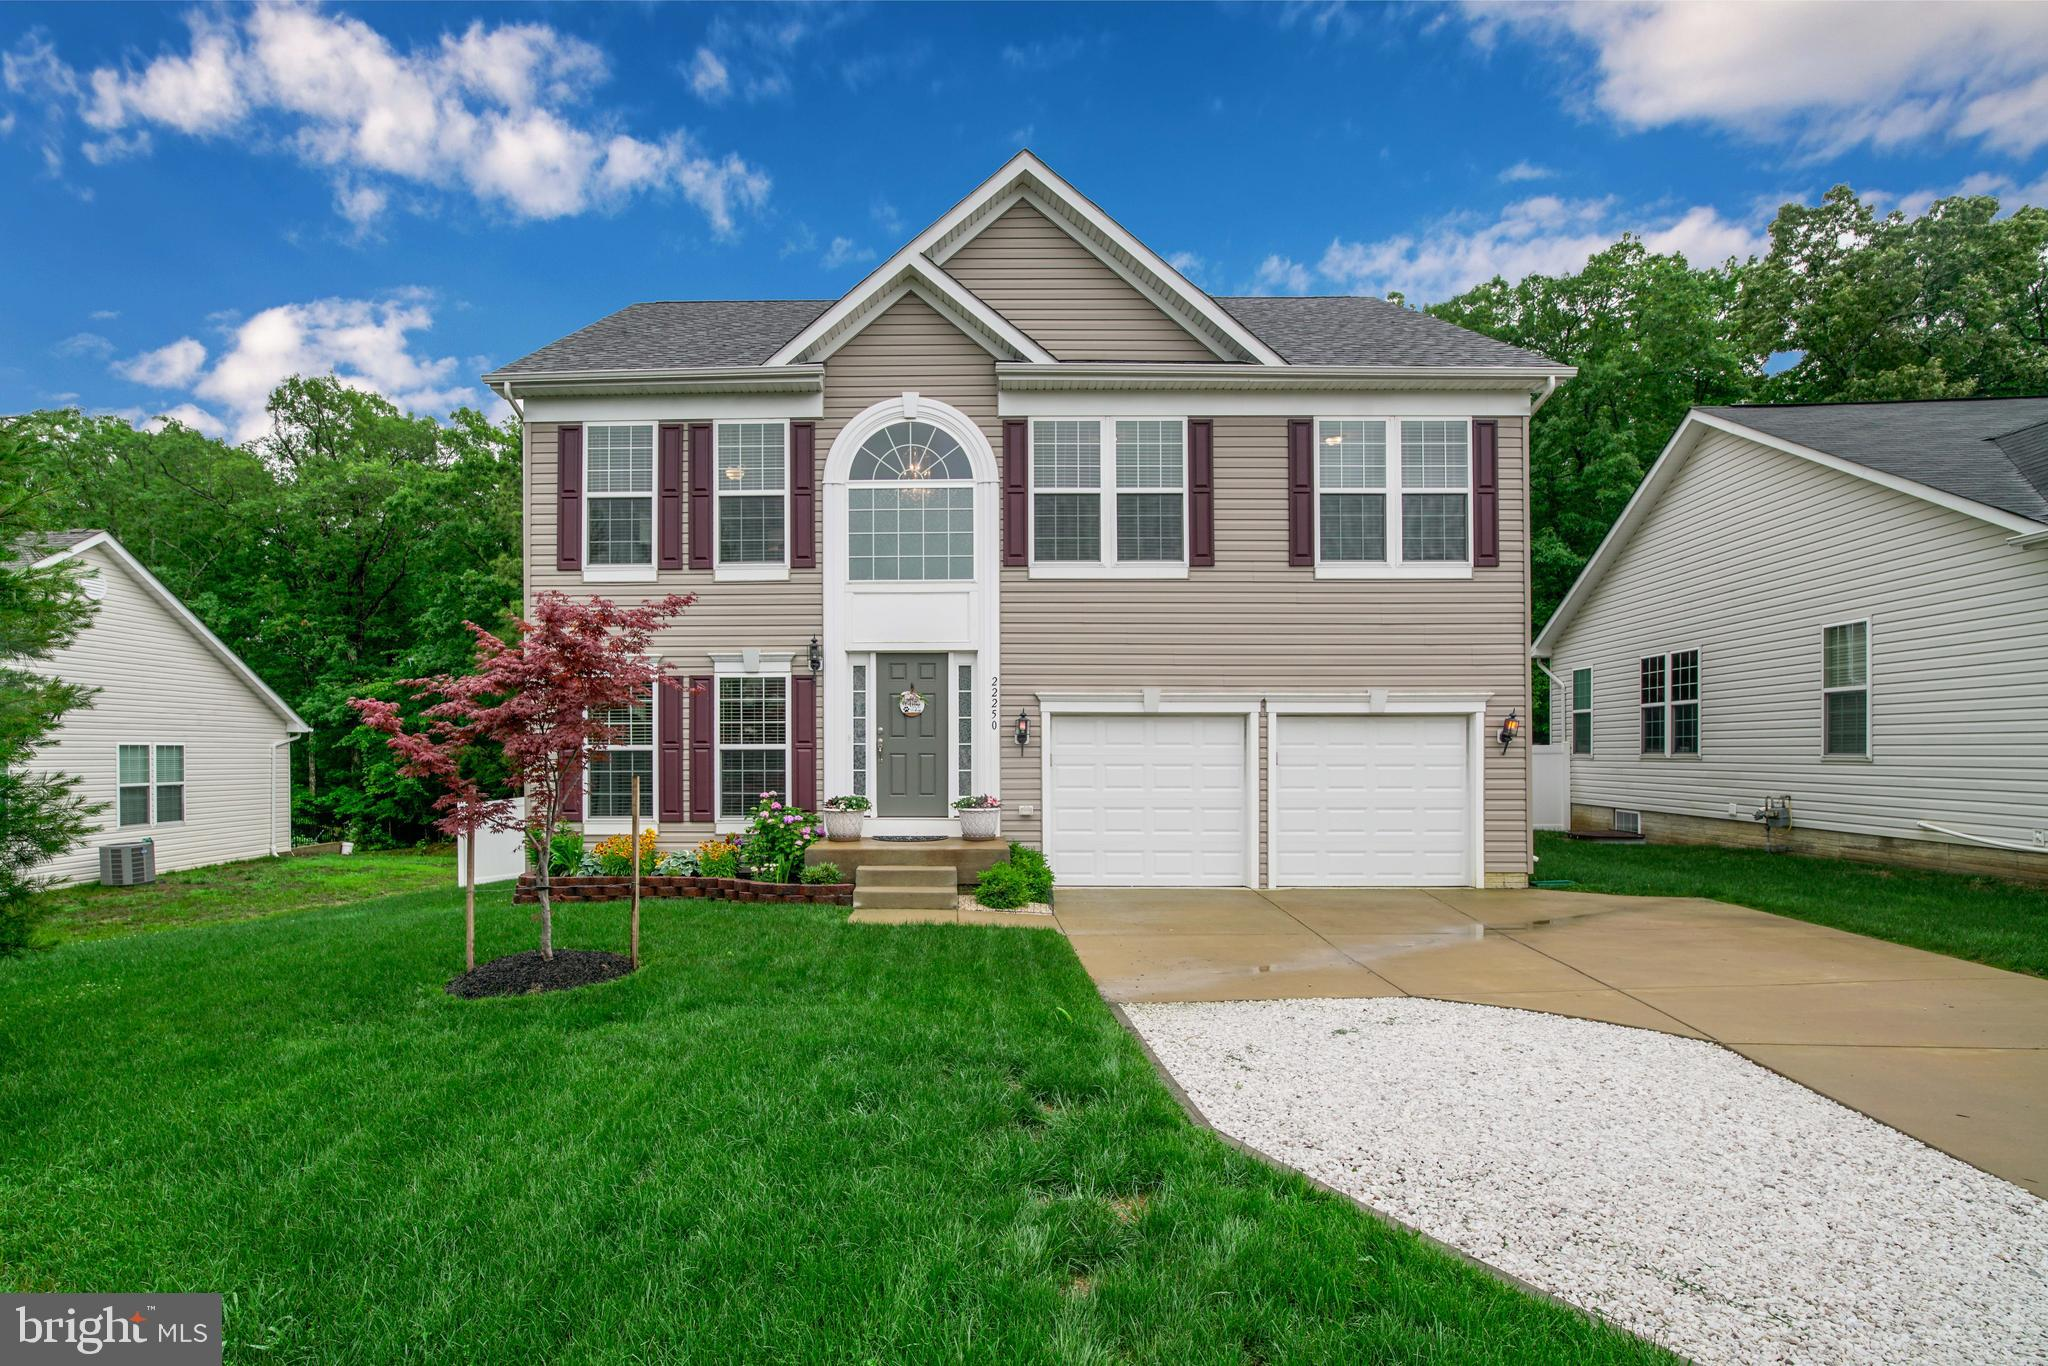 Why wait for new construction when you can get this newly built move in ready home. Everything has b